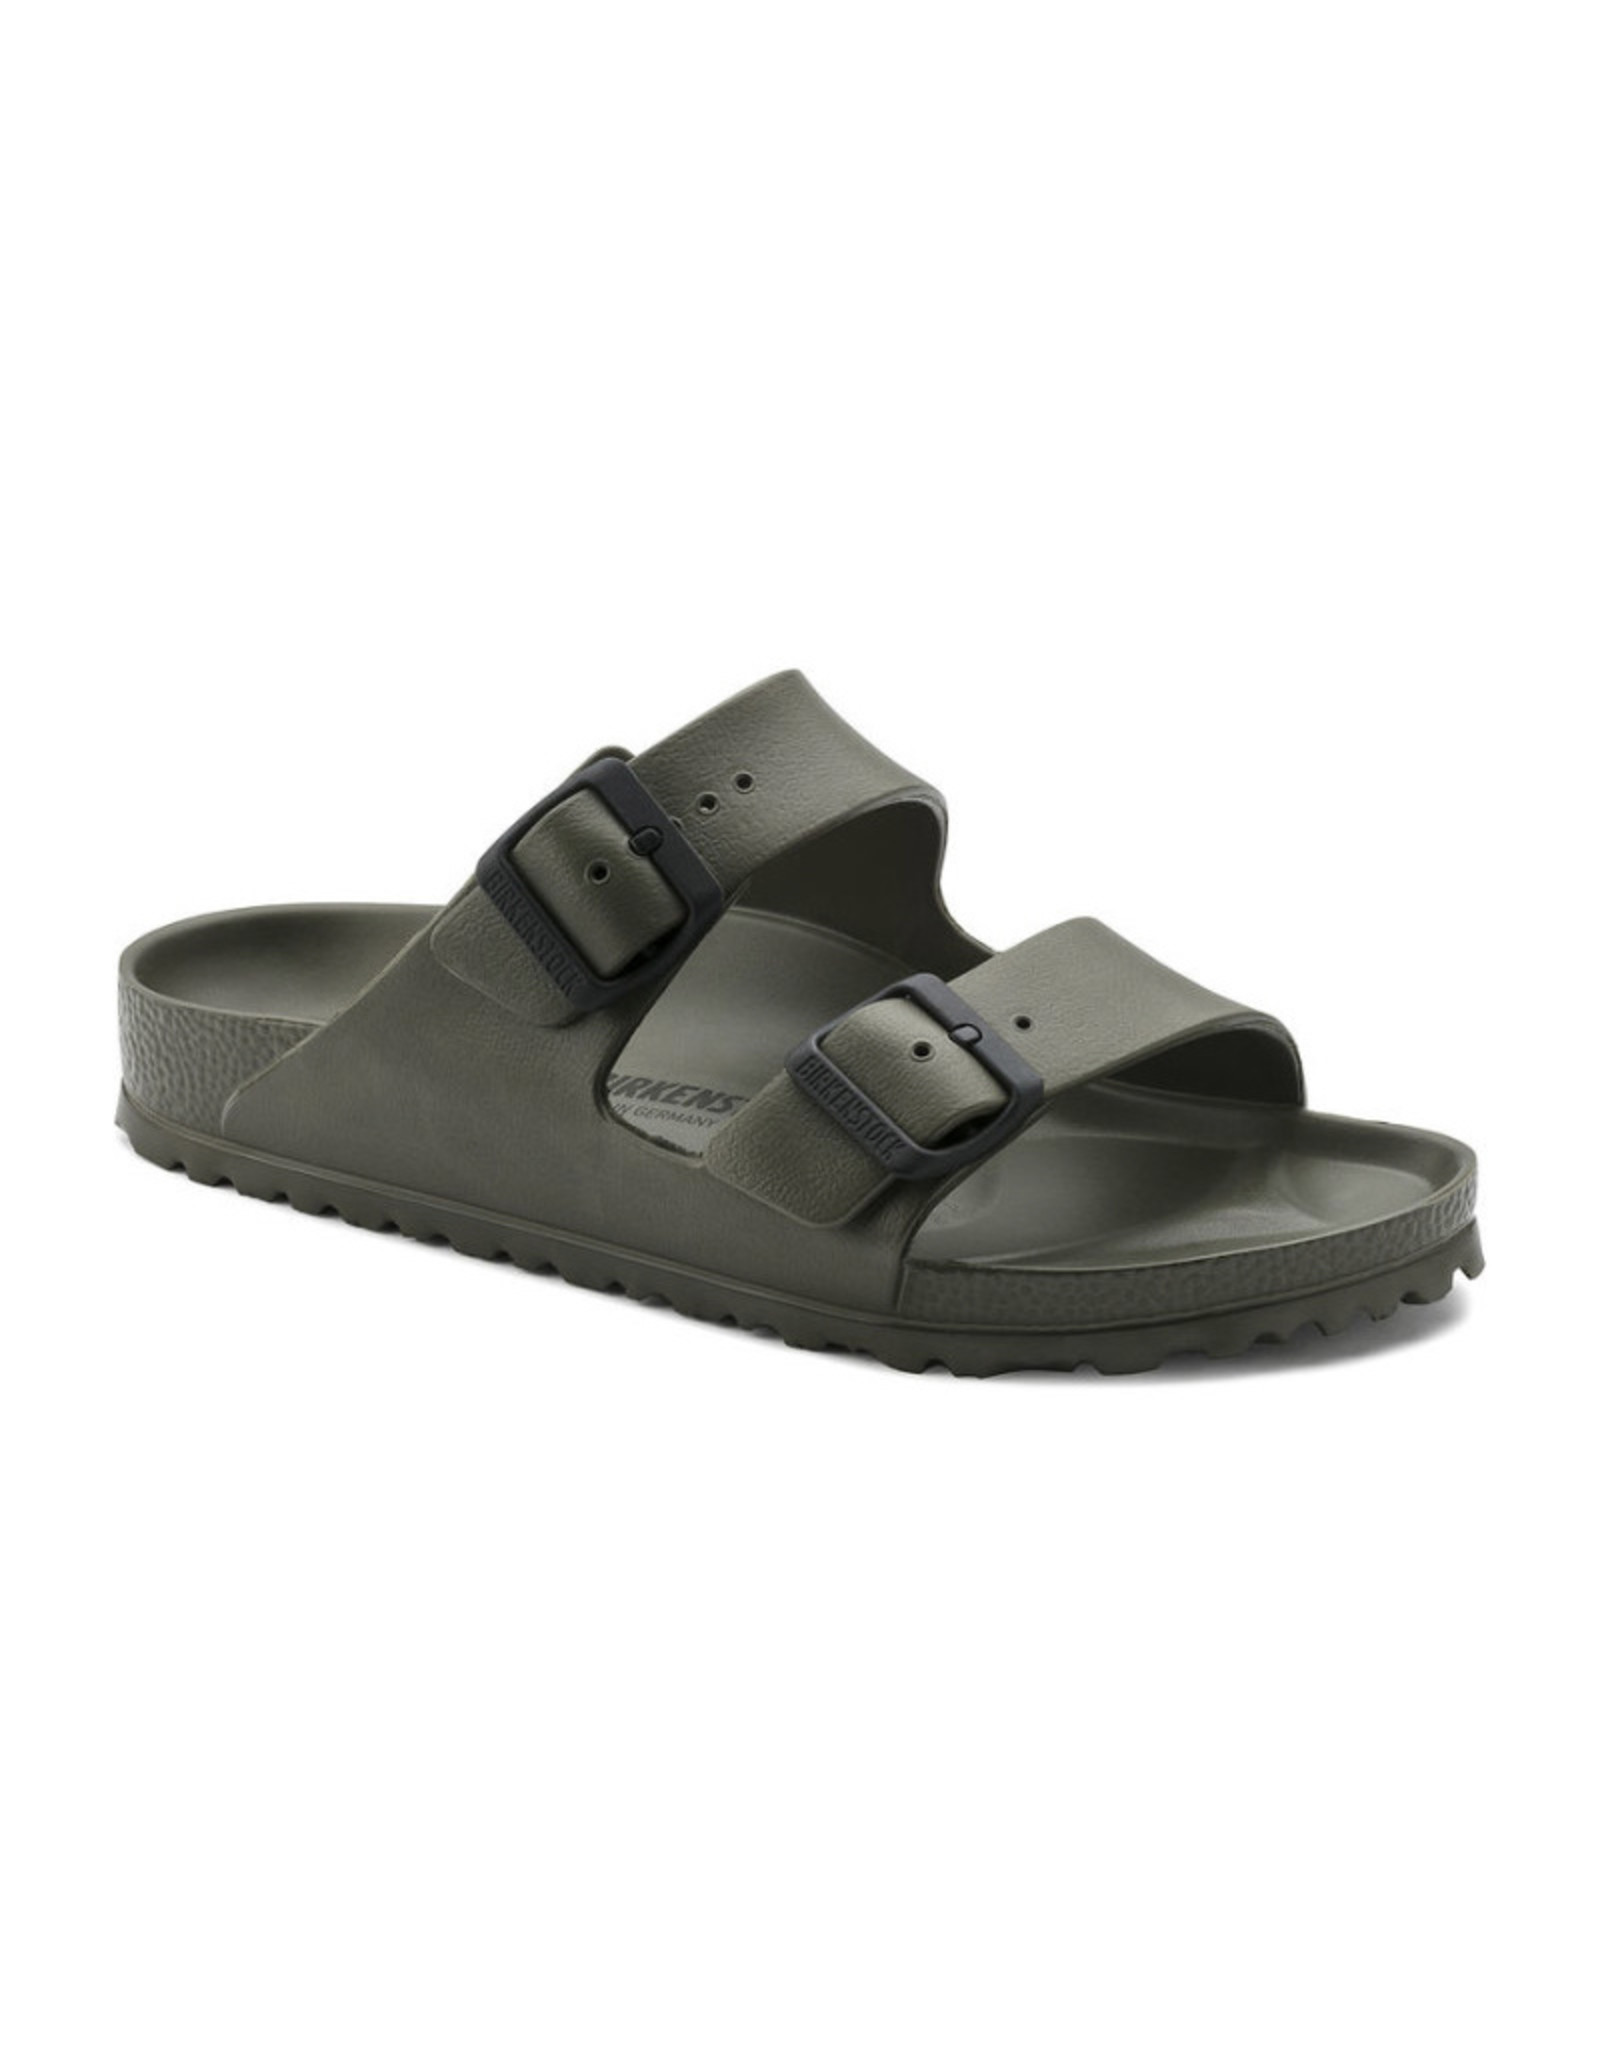 Birkenstock Arizona - EVA in Khaki (EVA)